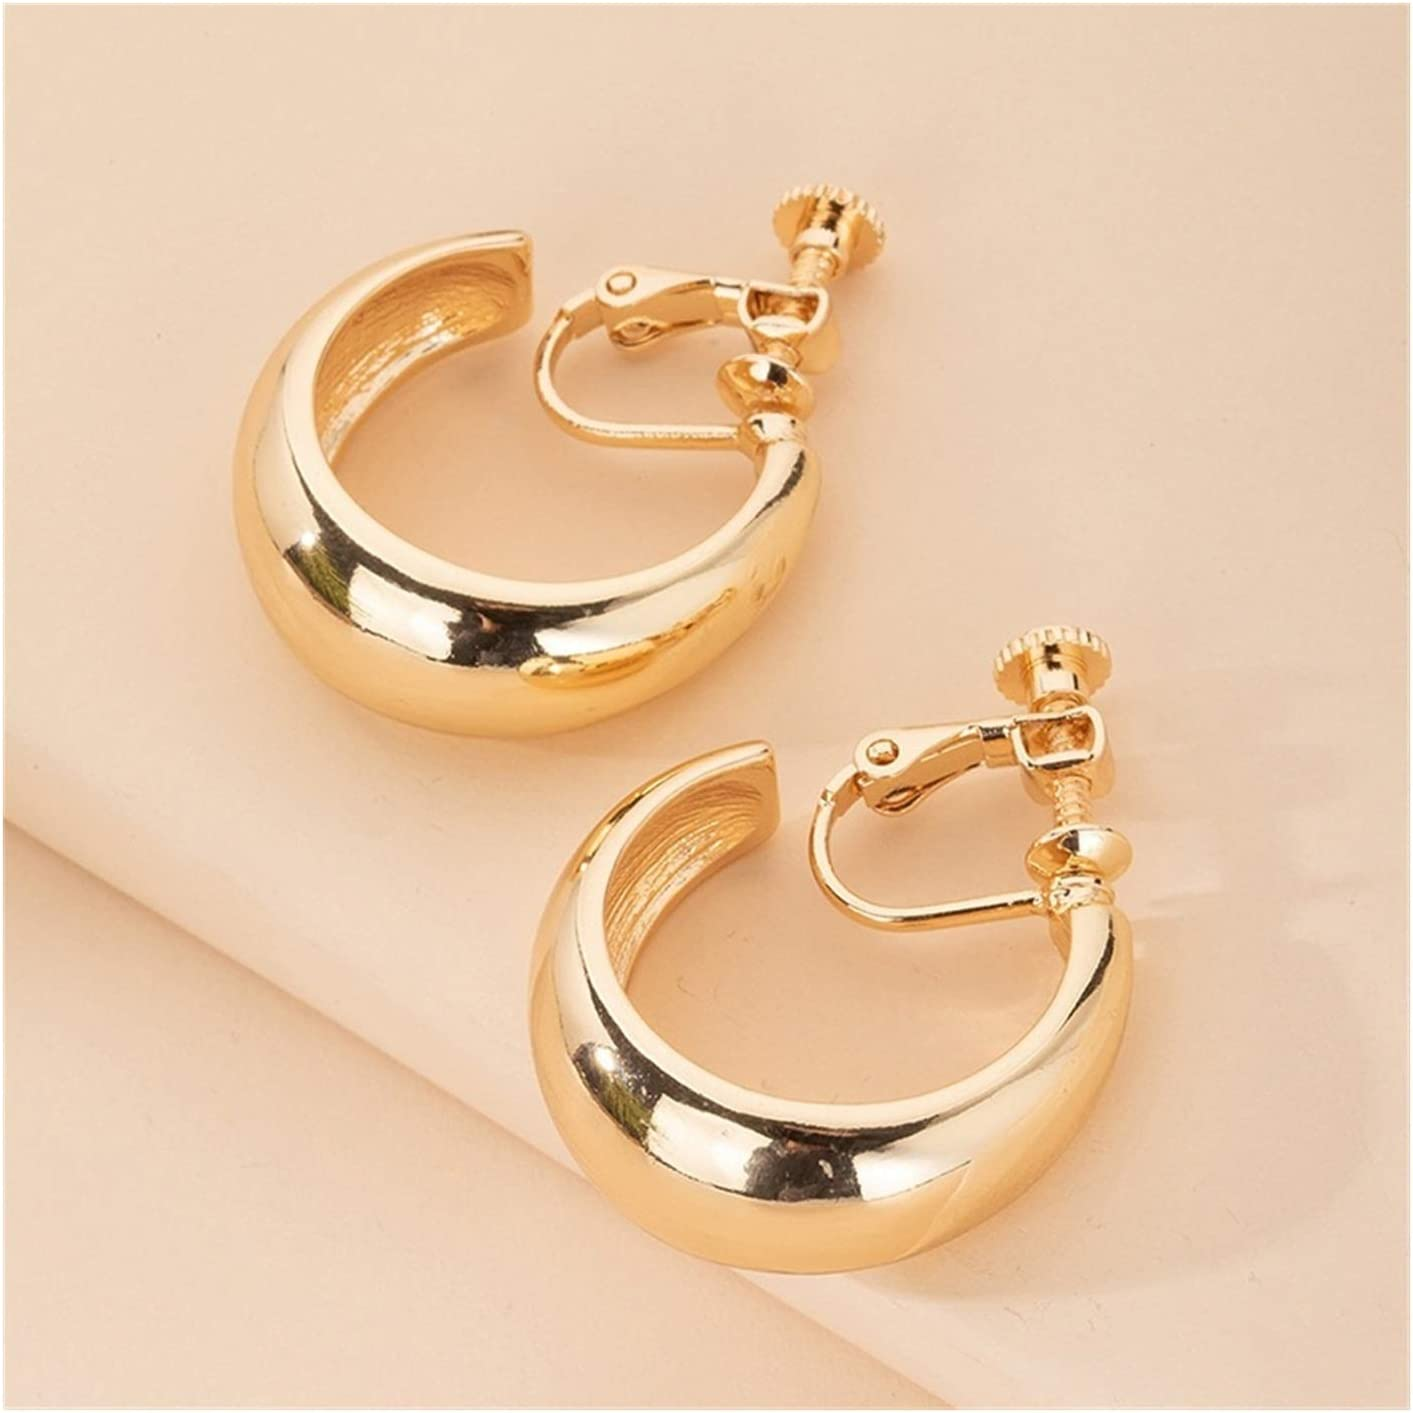 SHOYY Gold Color Alloy Clip On Earrings for Women Girls No Pierced Earrings Accessories Gift